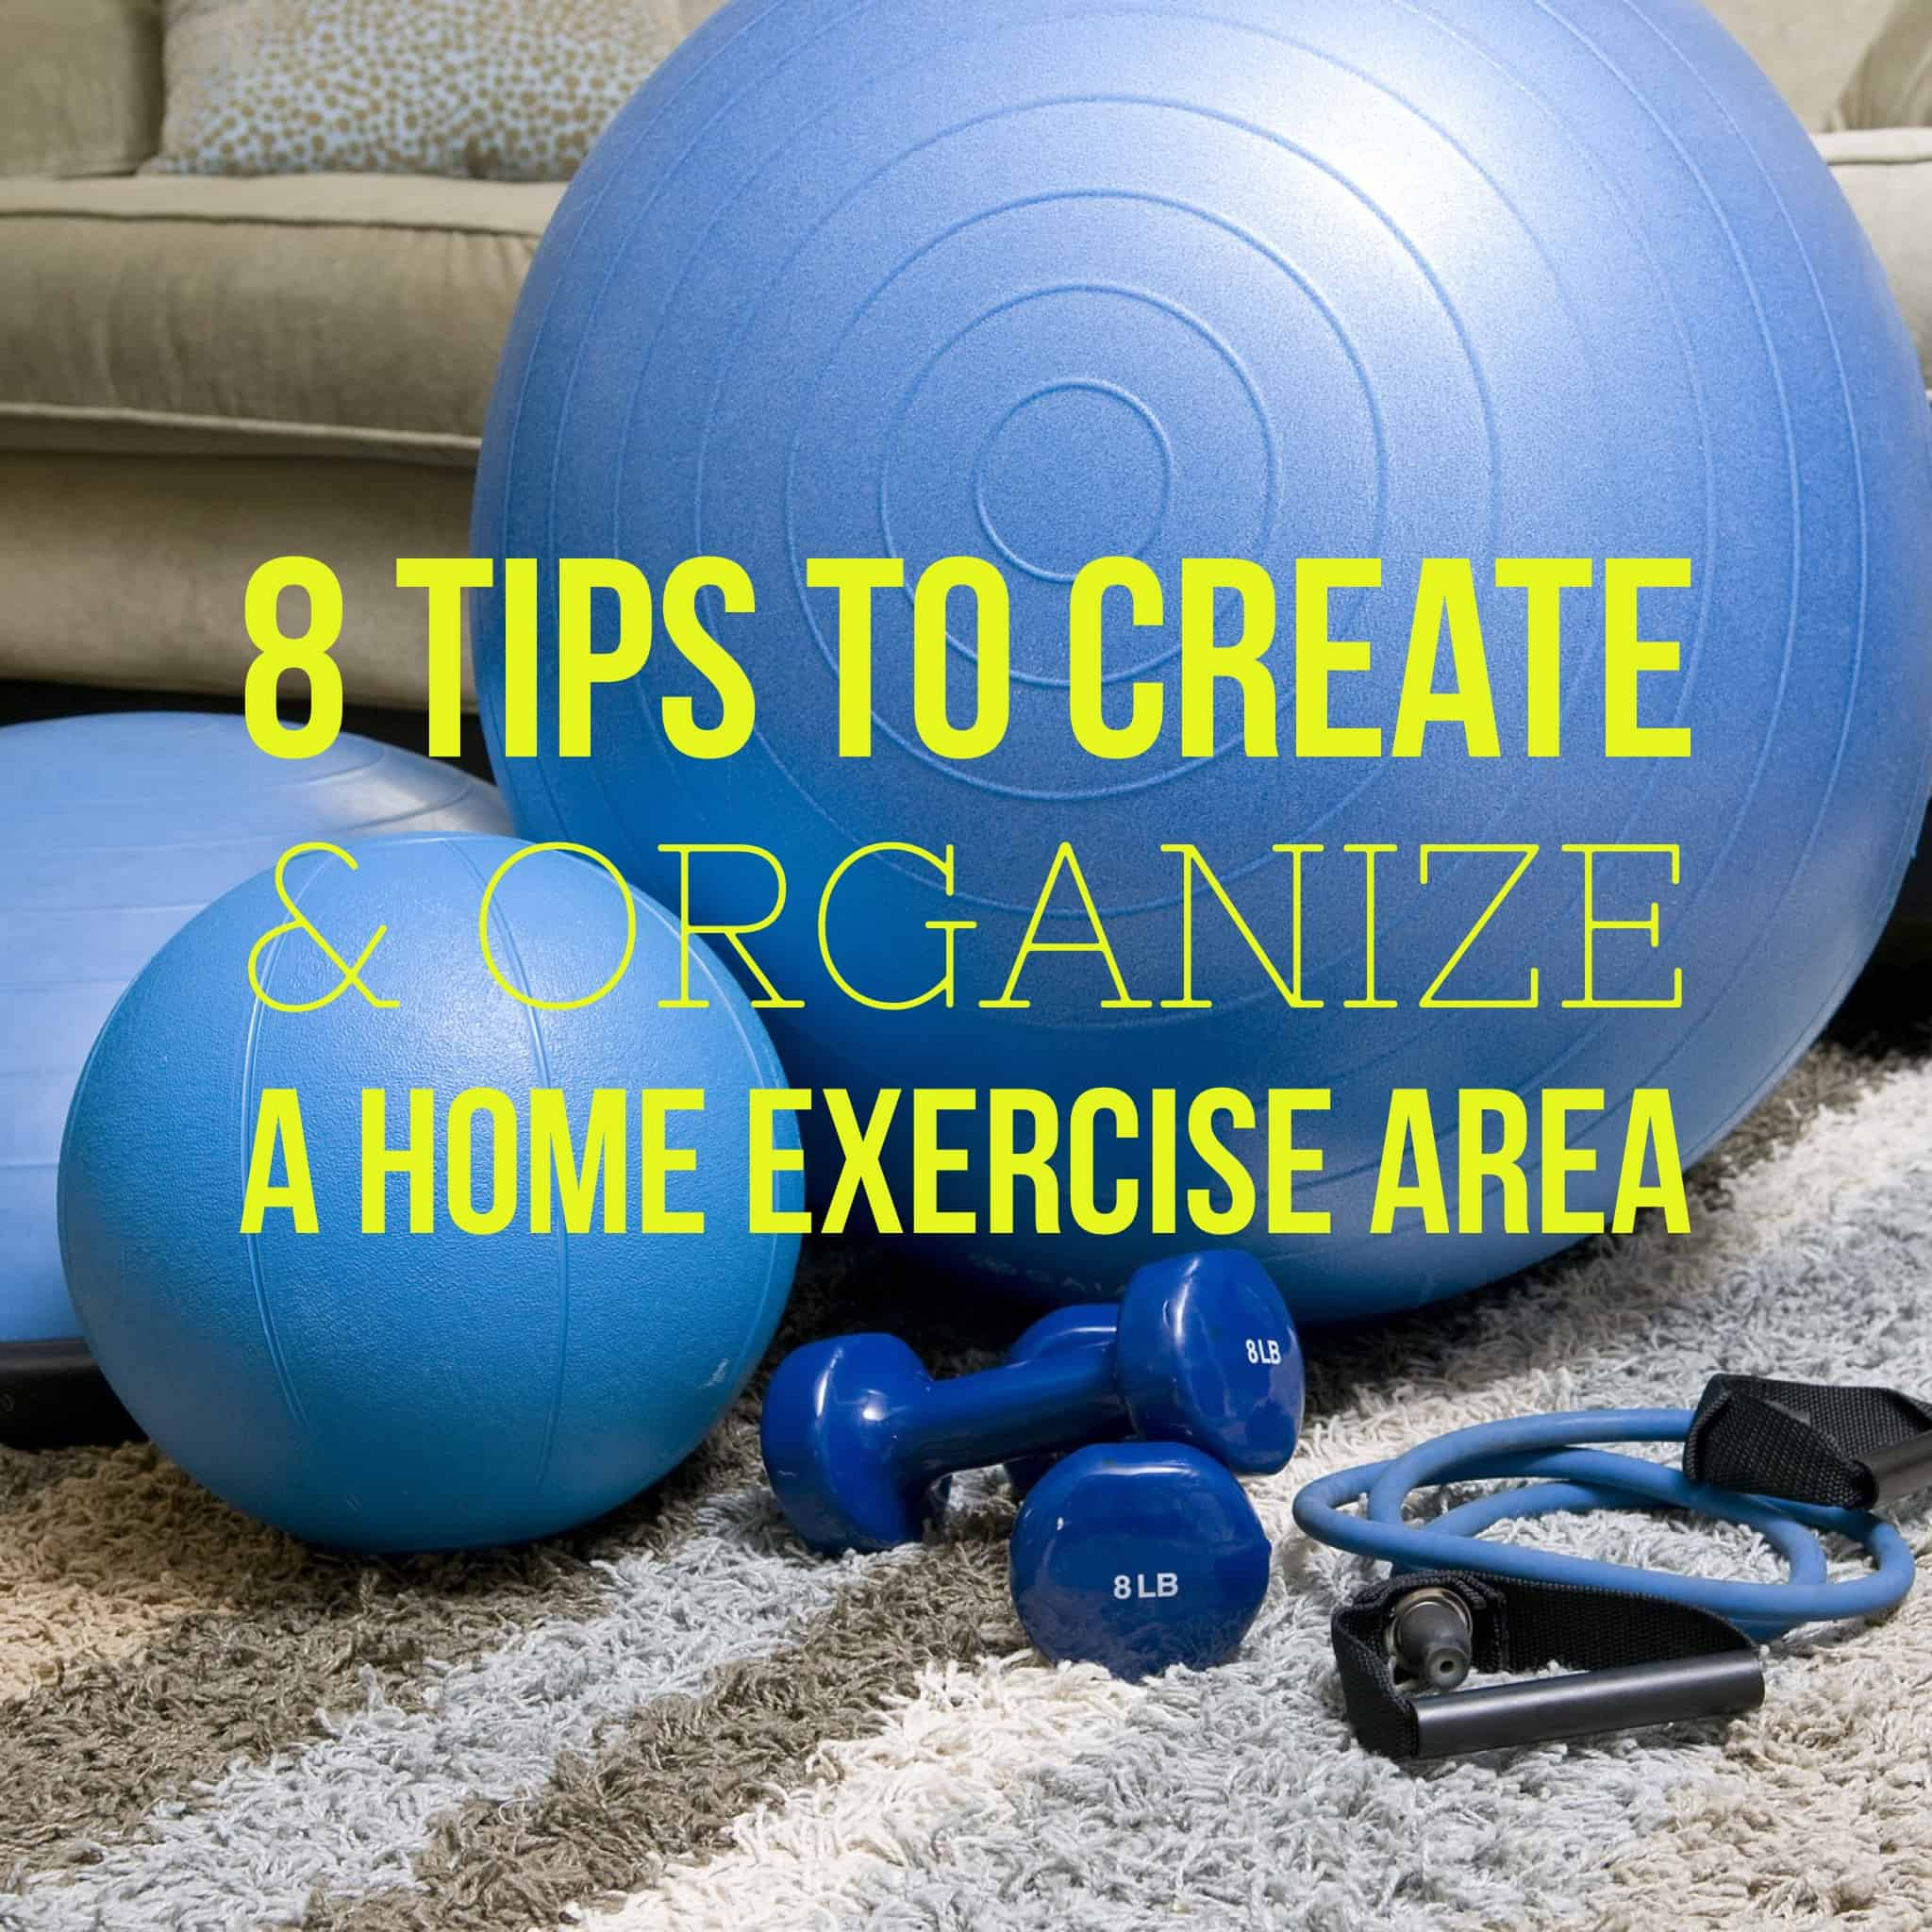 8 Tips to Create and Organize a Home Exercise Area